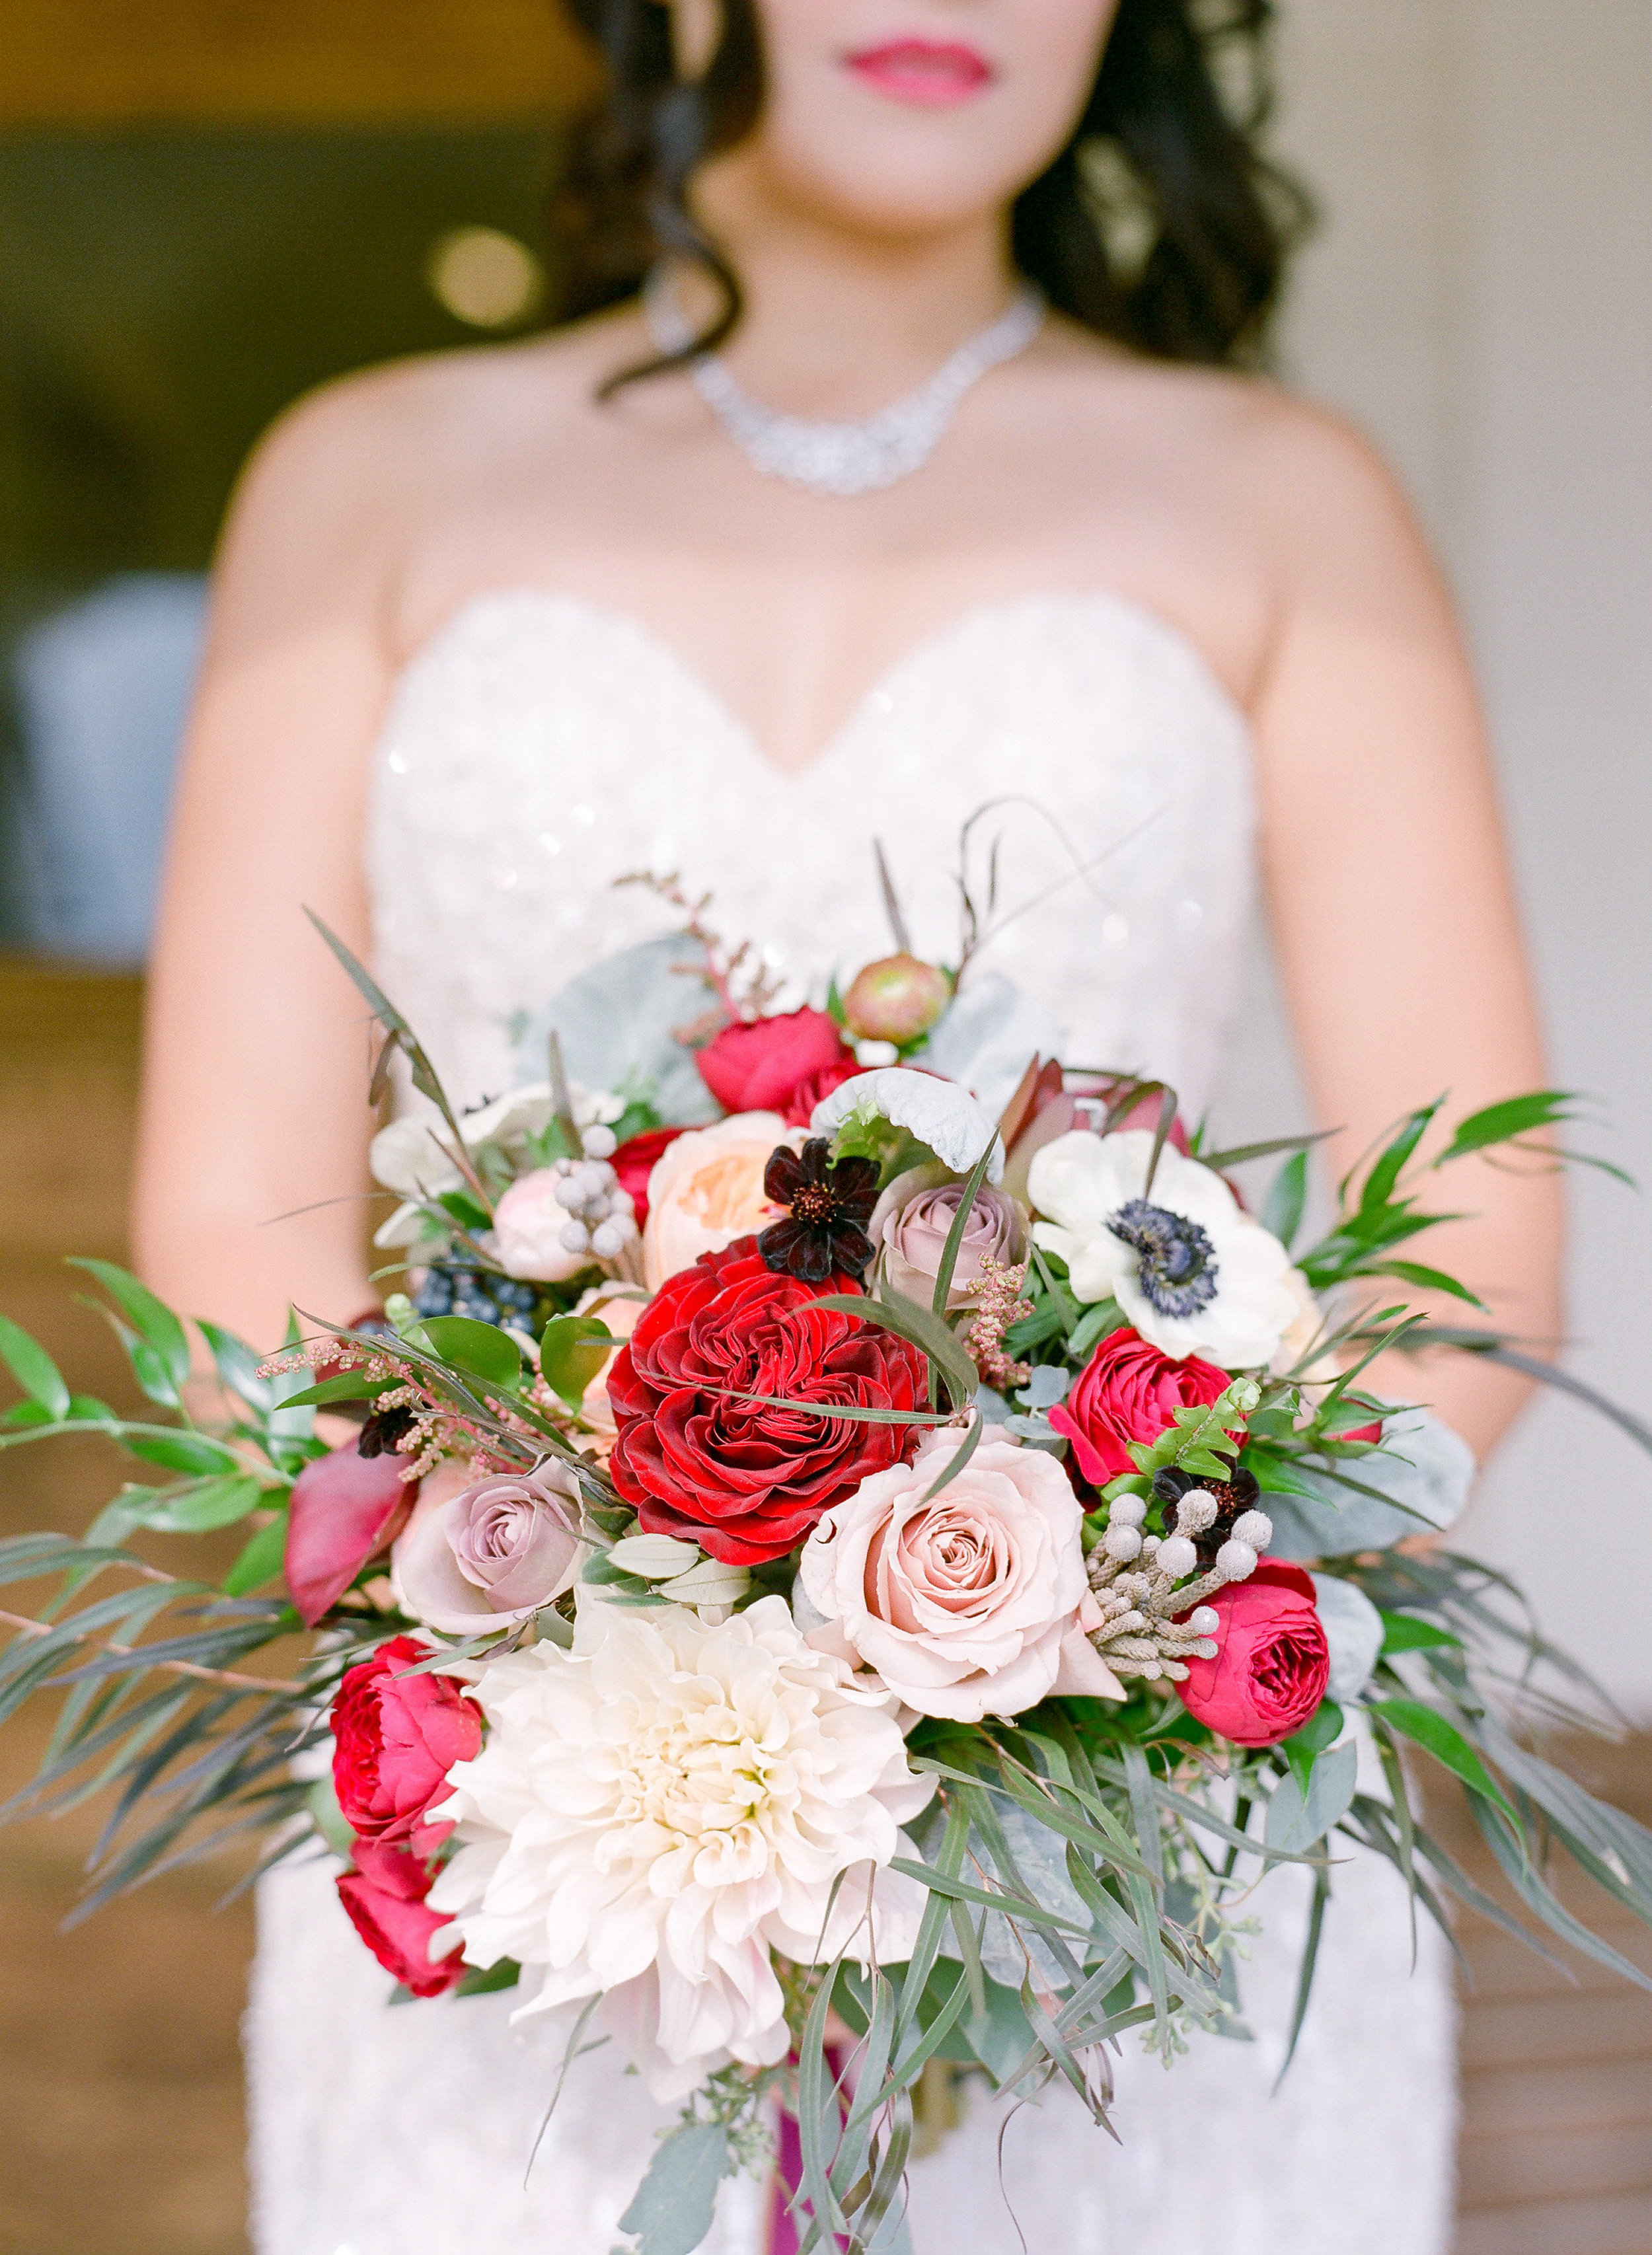 Amador_County_Wedding_Bouquet_Bride_Romantic_Whimsical_Glamorous_Dahlia_Roses_Ranunculus_Eucalyptus_Burgundy_Pink_Ivory_Outdoor_Summer_Evening_Rancho_Victoria_Vineyard_Northern_California.jpg